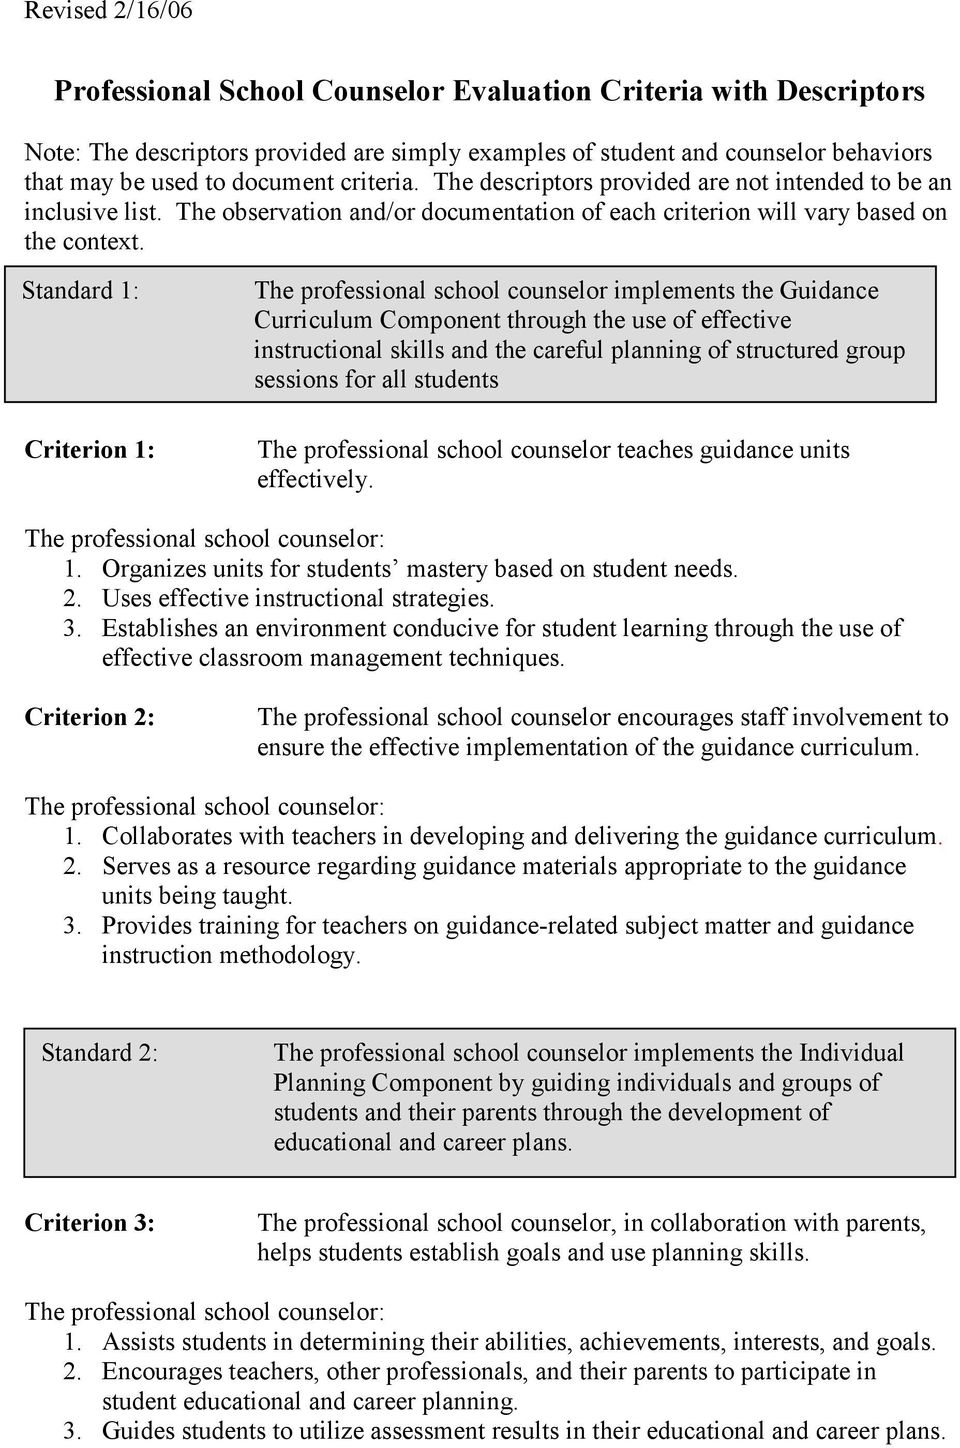 Standard 1: Criterion 1: The professional school counselor implements the Guidance Curriculum Component through the use of effective instructional skills and the careful planning of structured group